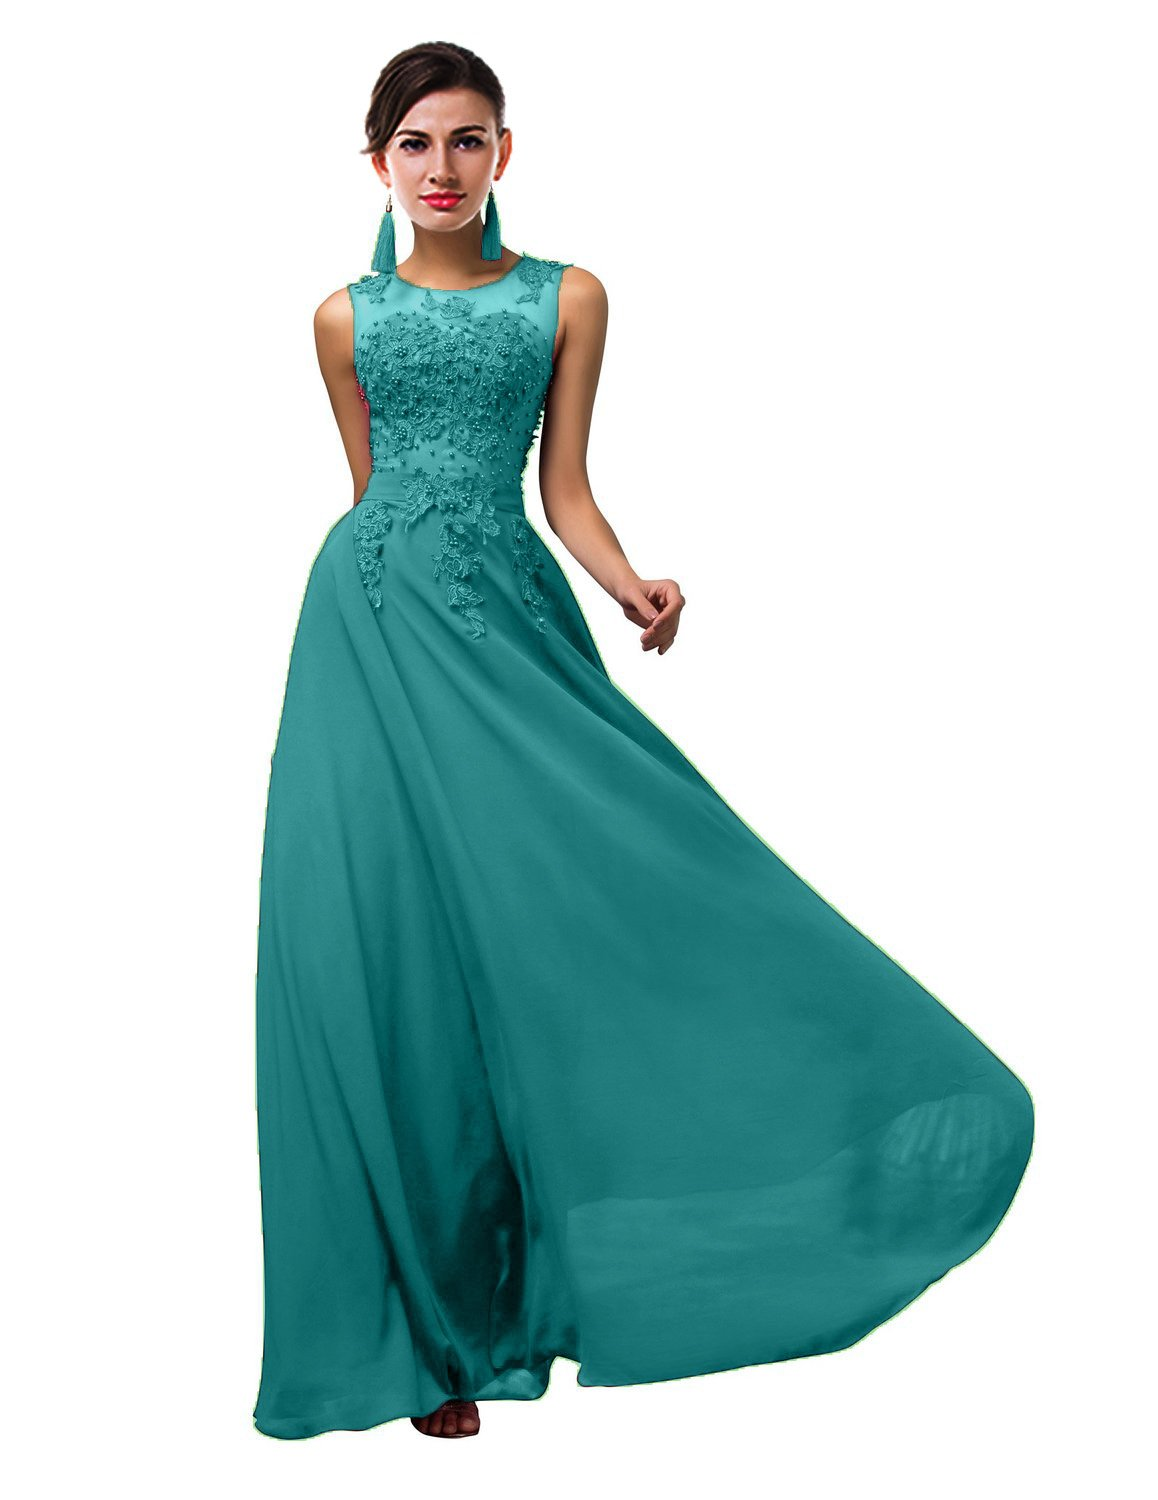 Thalia Women Long Sheer Neck Evening Bridesmaid Dresses Prom Gowns T004LF Turquoise US12